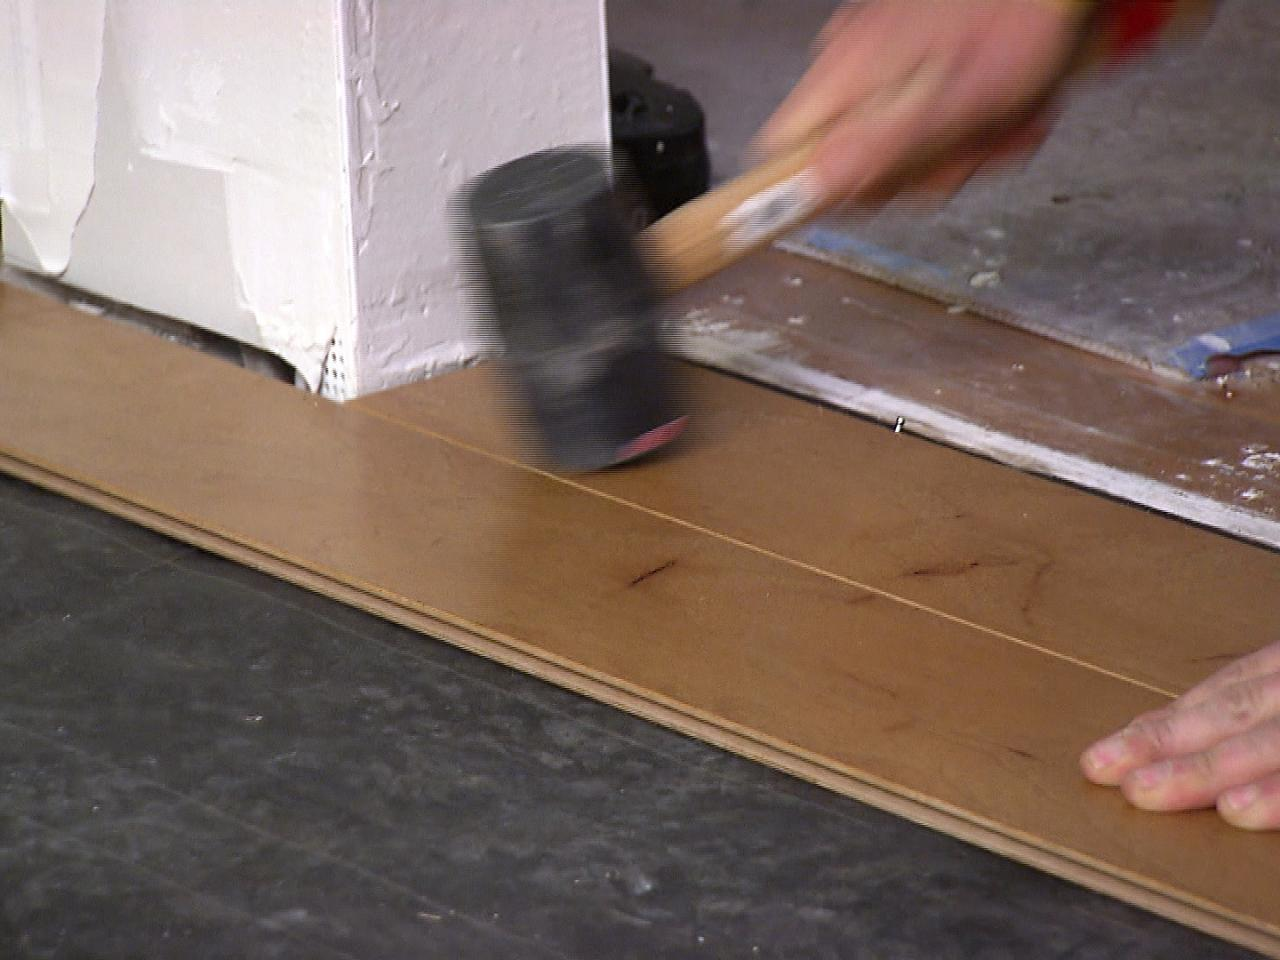 installing-hardwood-flooring-panels-overlay-diy-project-for-new-home-remodels